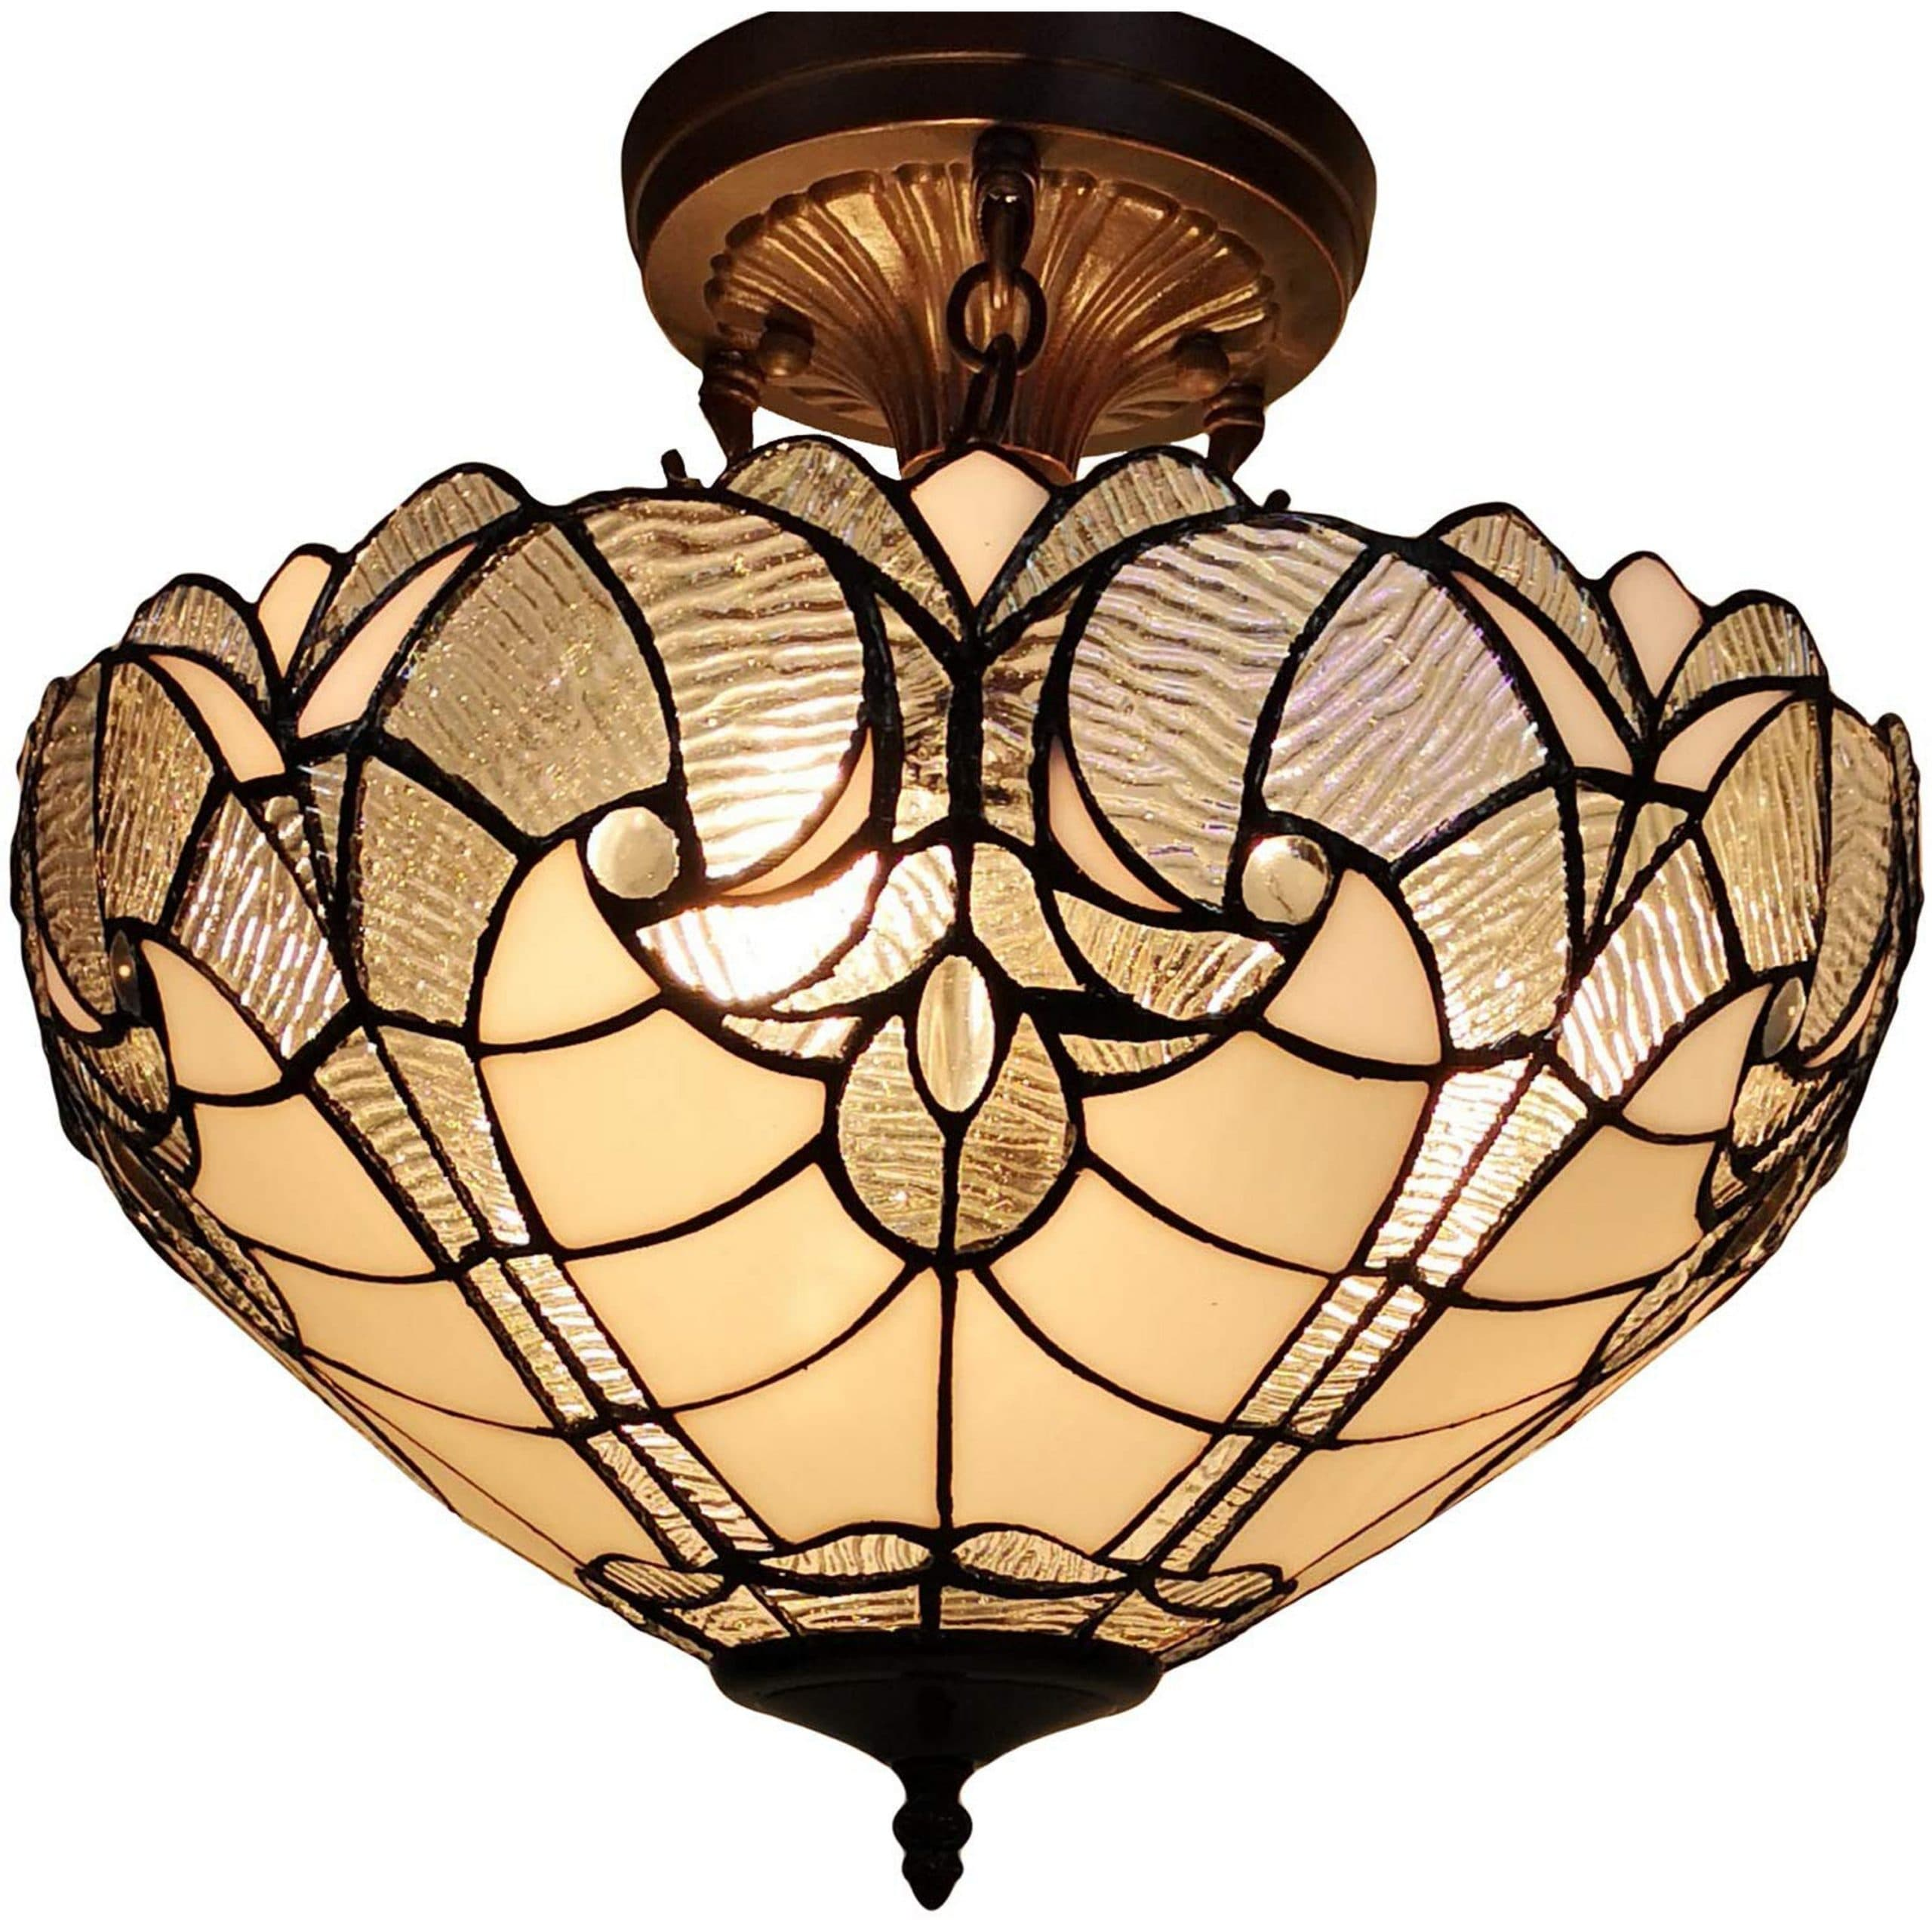 Shop Tiffany Style Ceiling Lamp Fixture Semi Flush 16 Wide White Stained Glass 2 Dining Room Gift Am216hl16b Amora Lighting Overstock 11951937